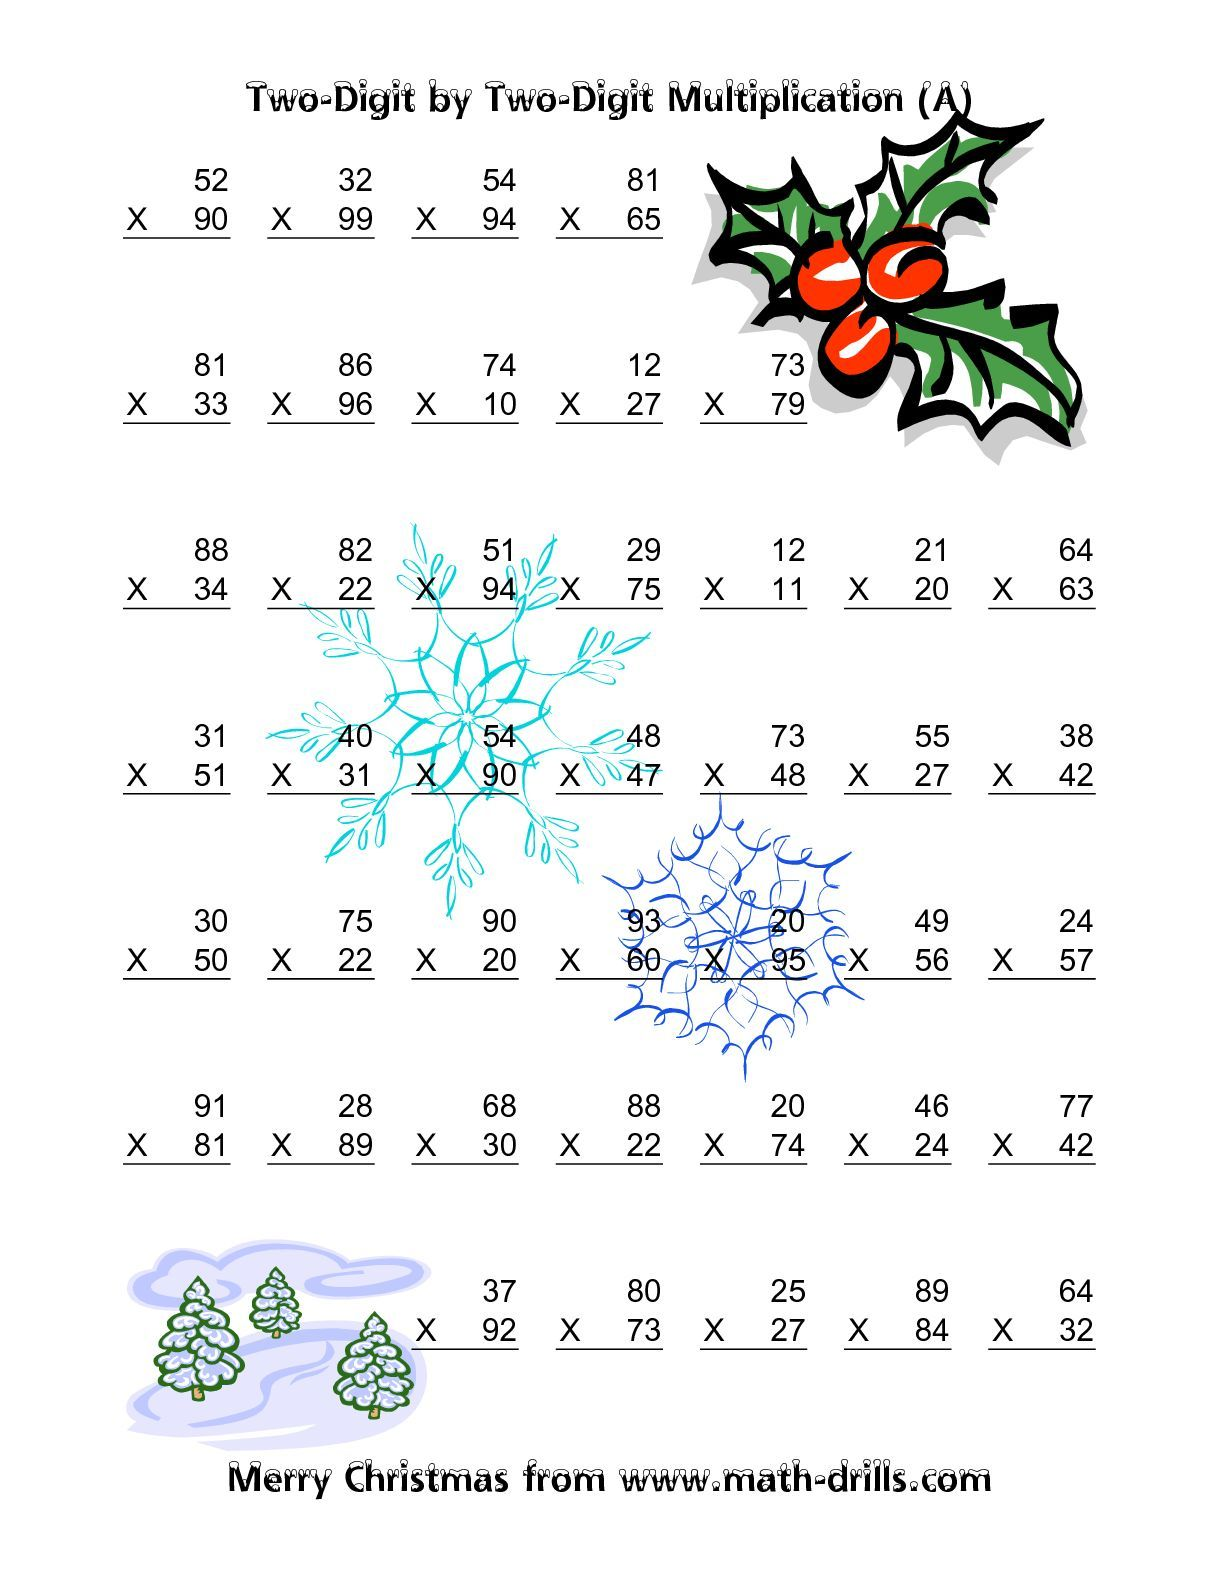 worksheet Free Christmas Math Worksheets multiplication two digit by vertical 49 per page a lily christmas math worksheet vertical